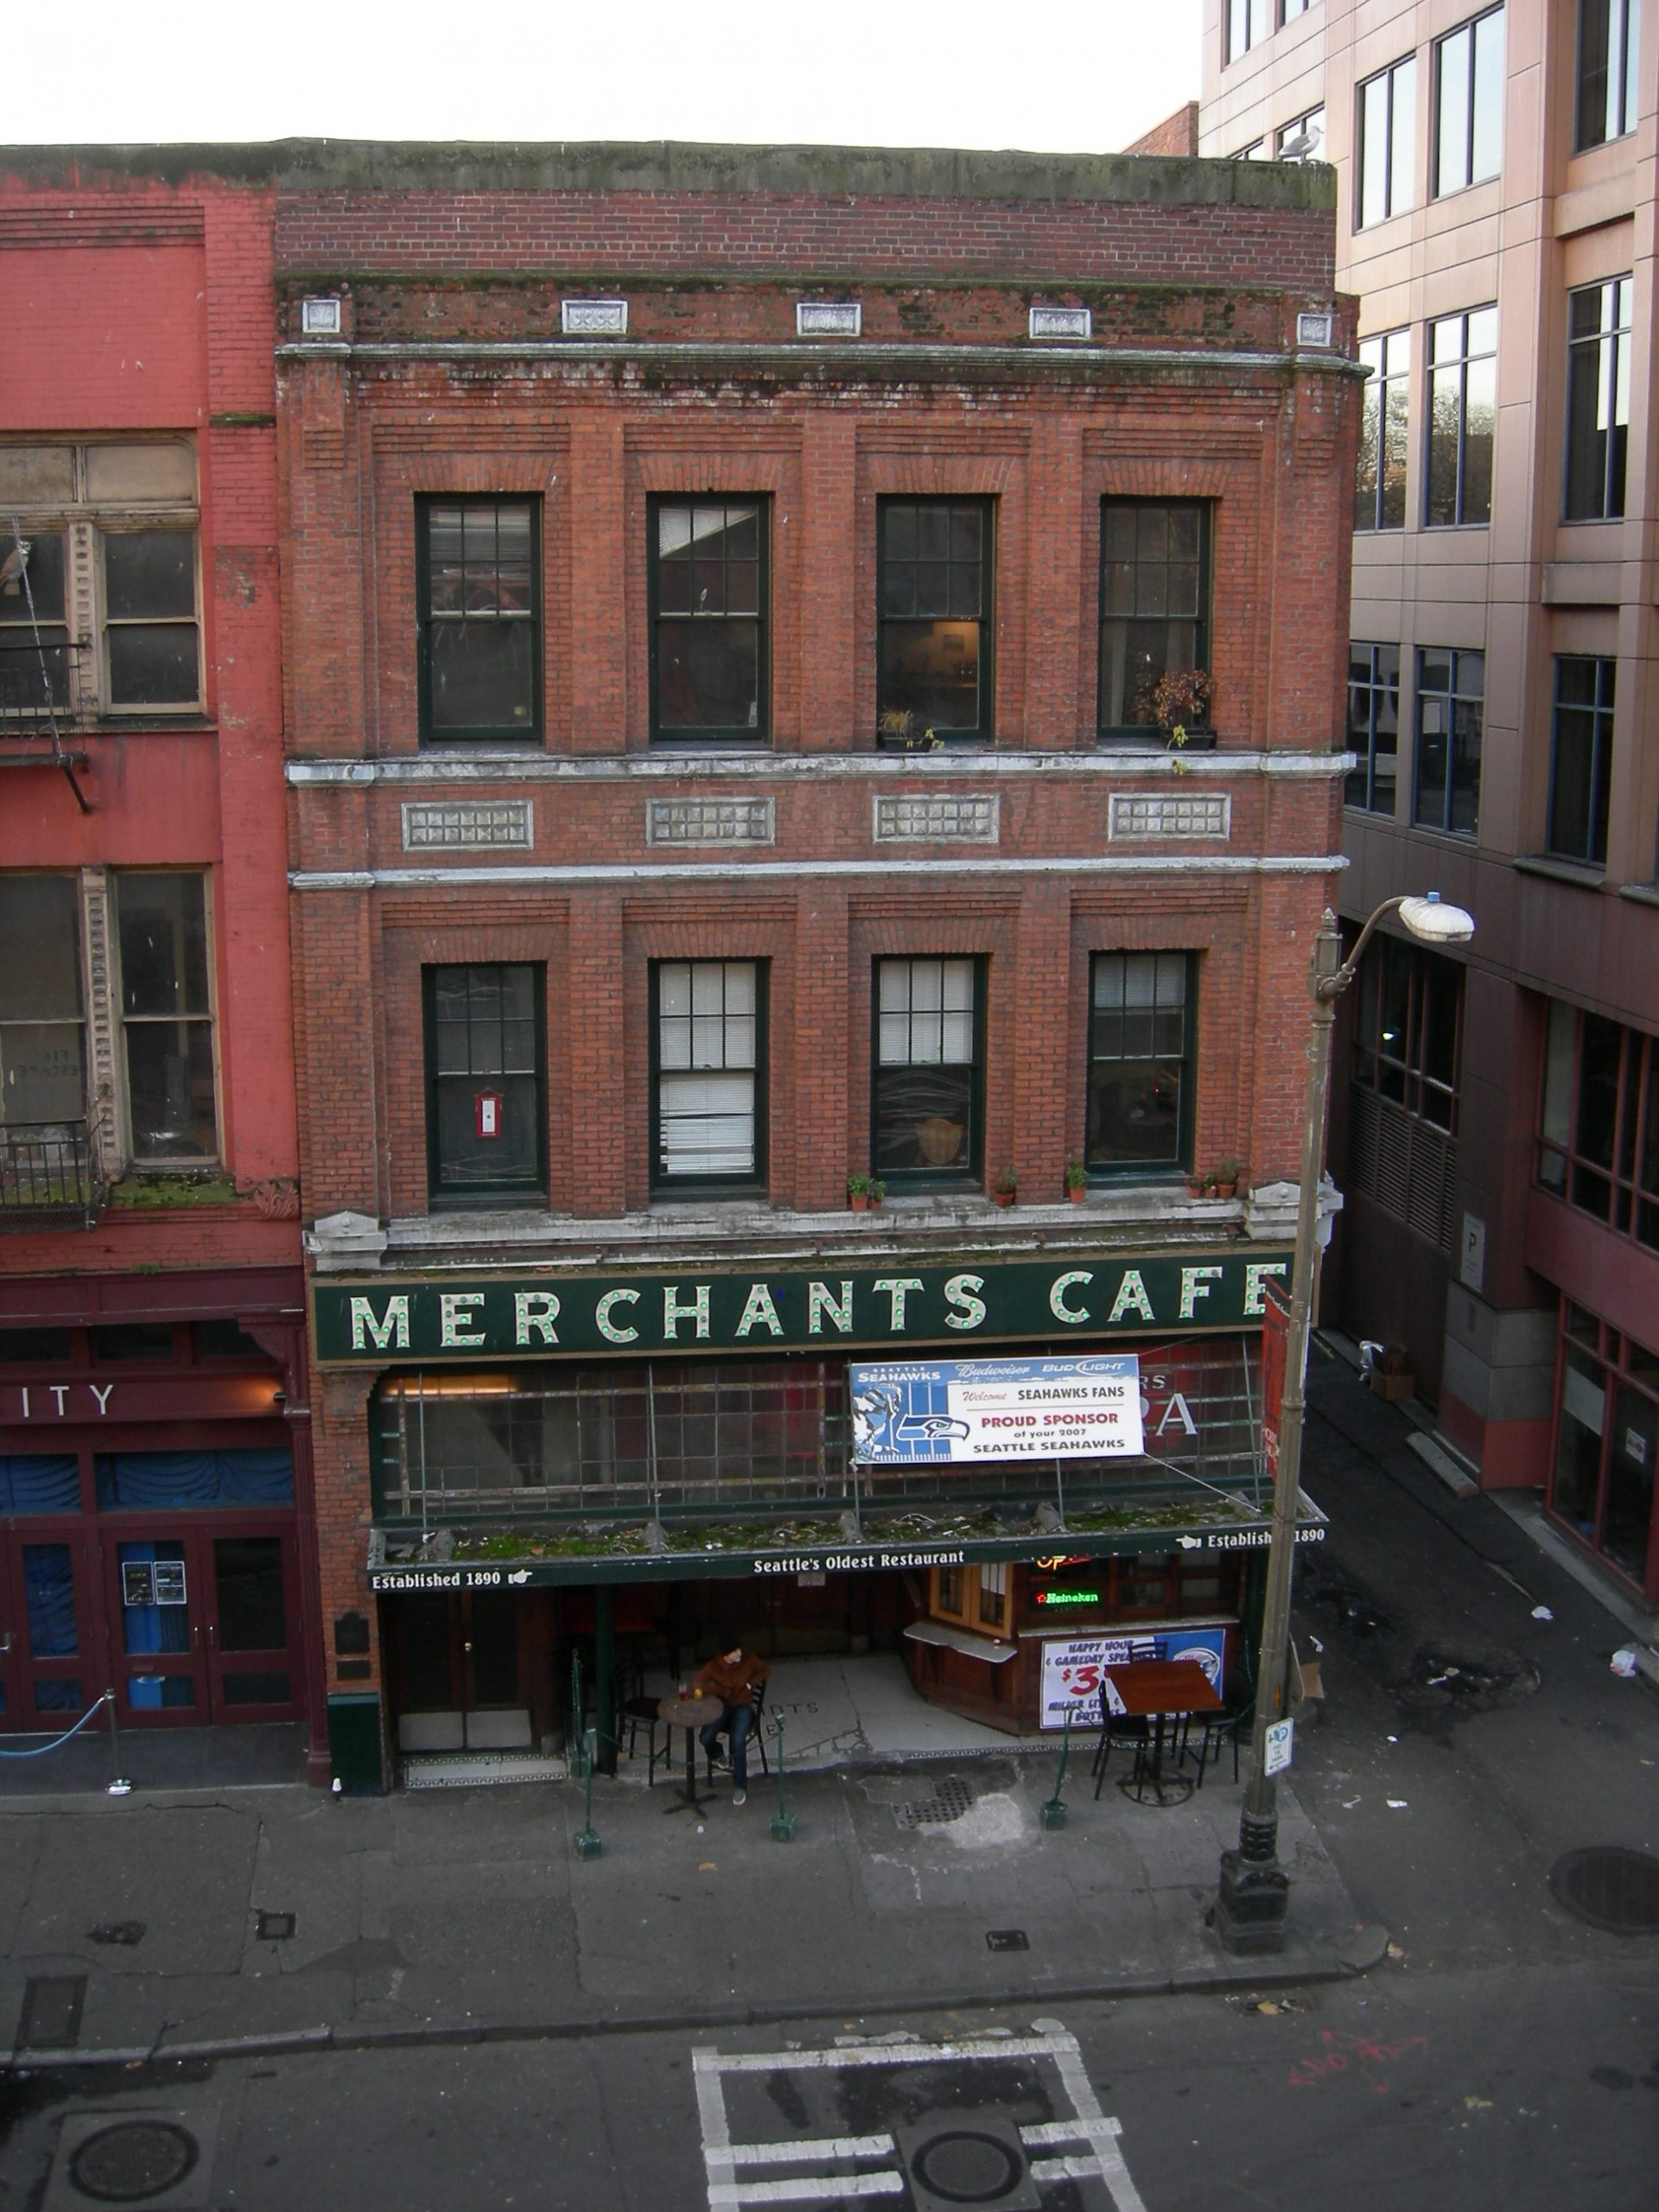 The facade of the Merchants cafe from the air